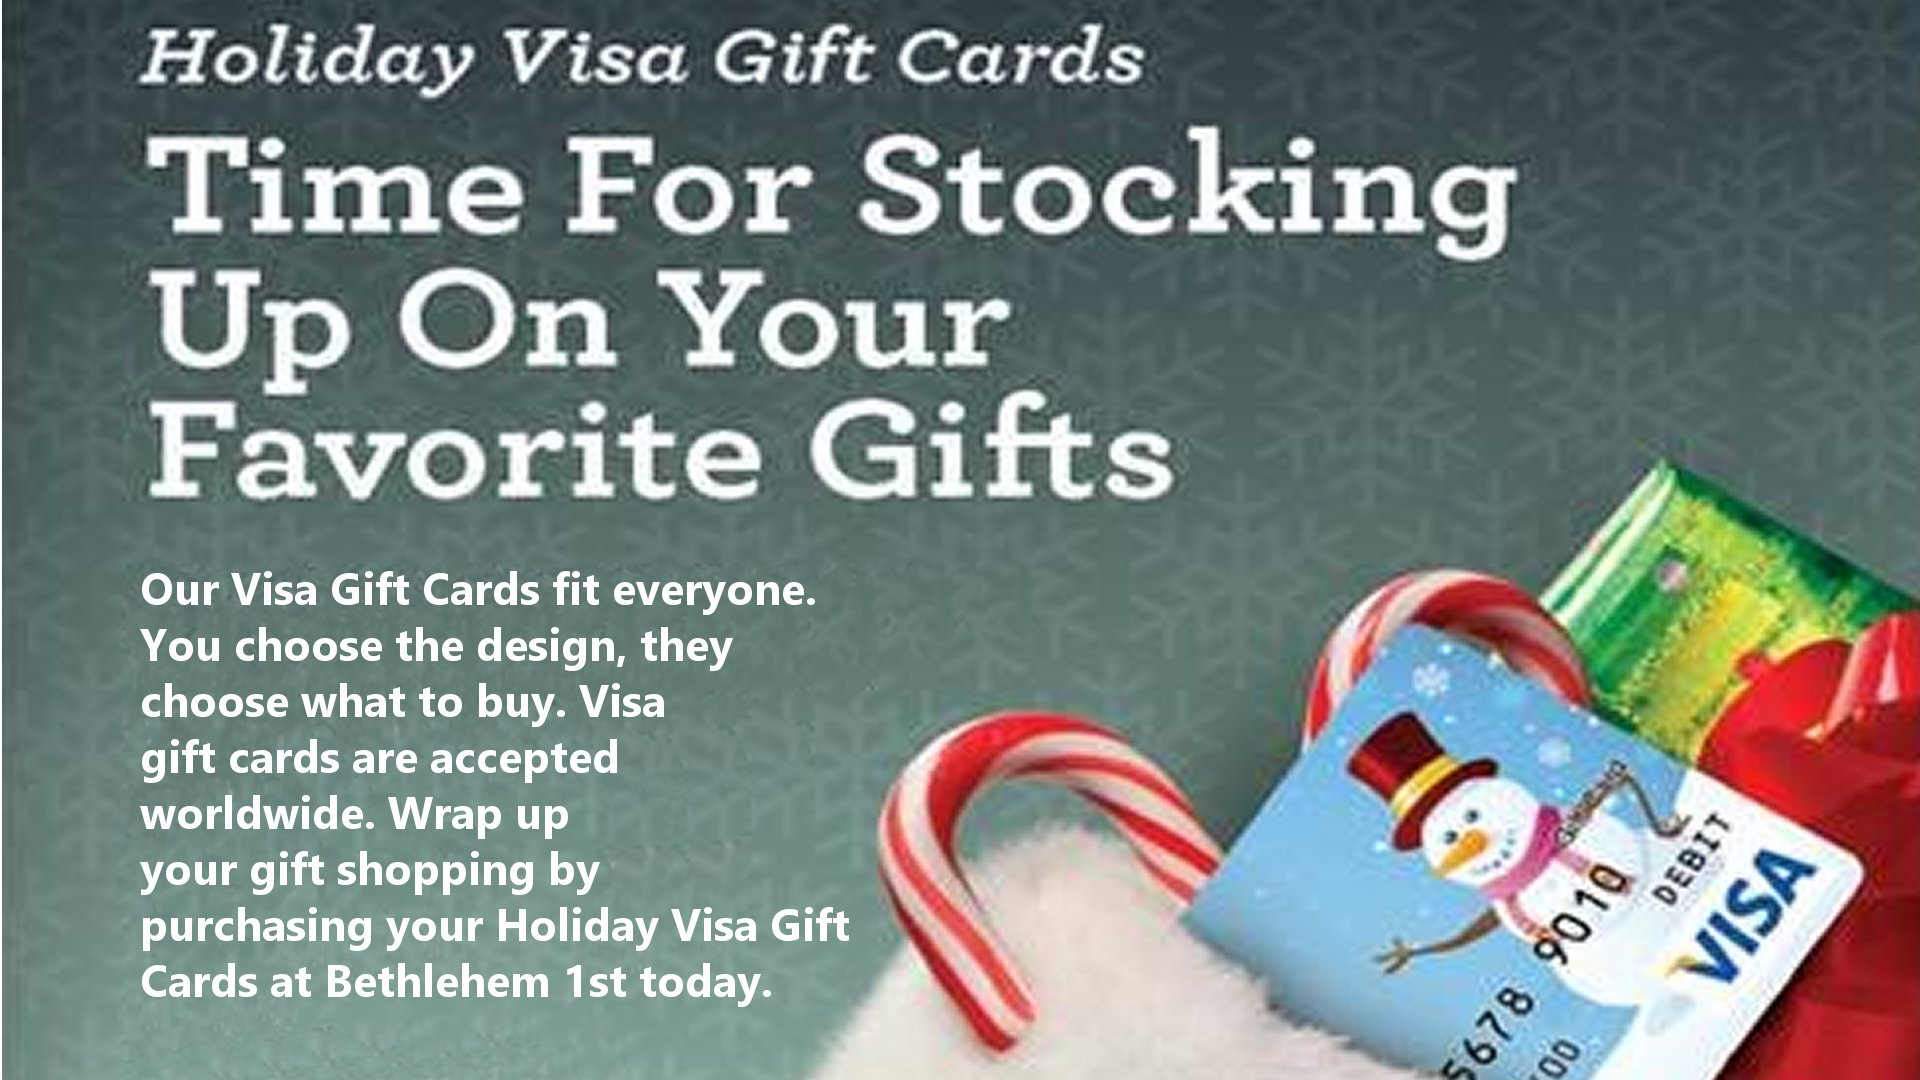 Visa Gift Cards from Bethlehem 1st Federal Credit Union fit everyone.